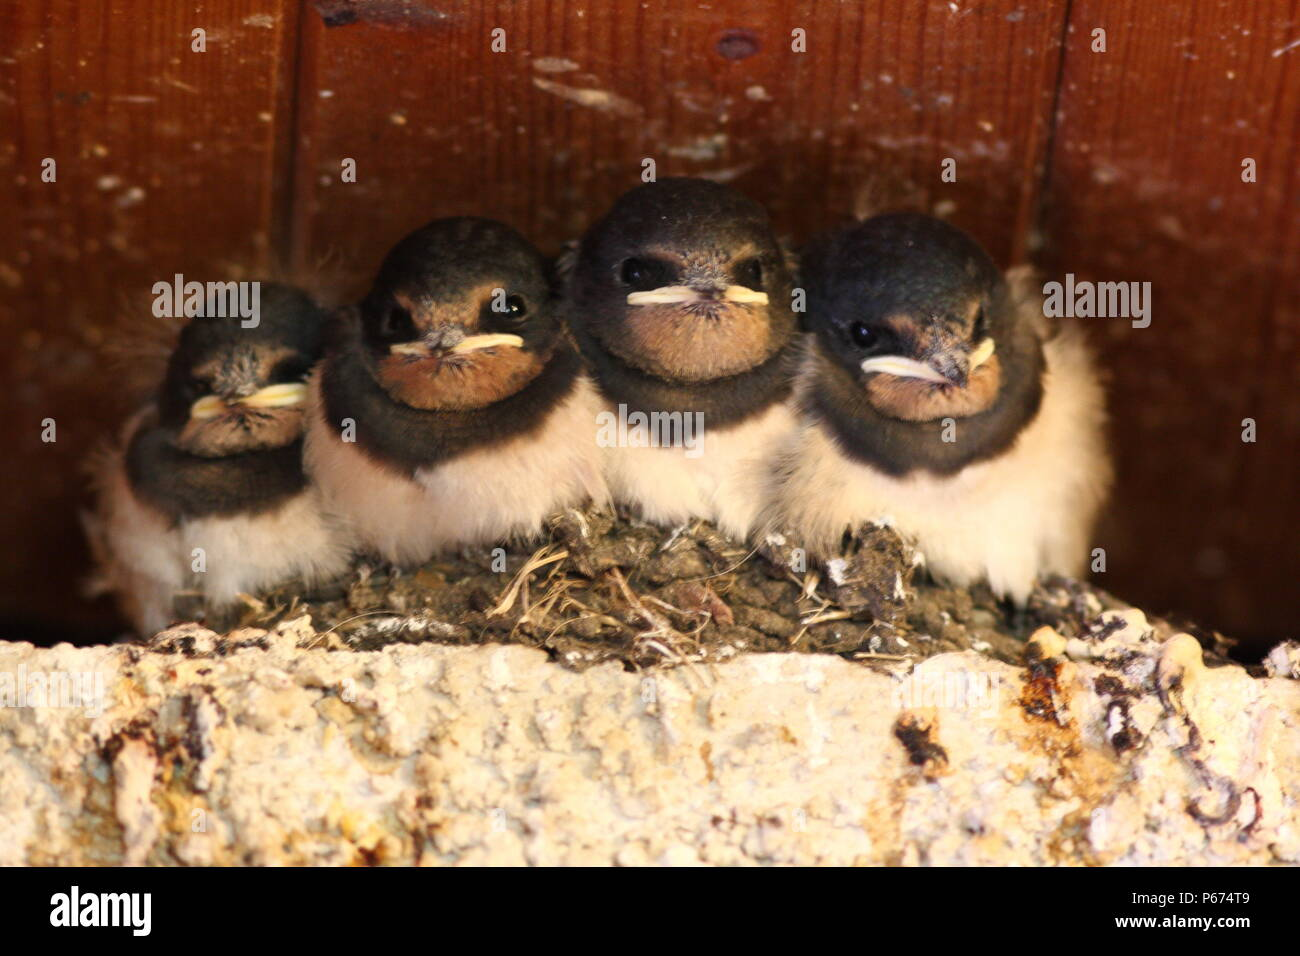 Hirundo rustica, Barn Swallow nestlings, within a toilet block. 4 young in this nest near to fledging. - Stock Image